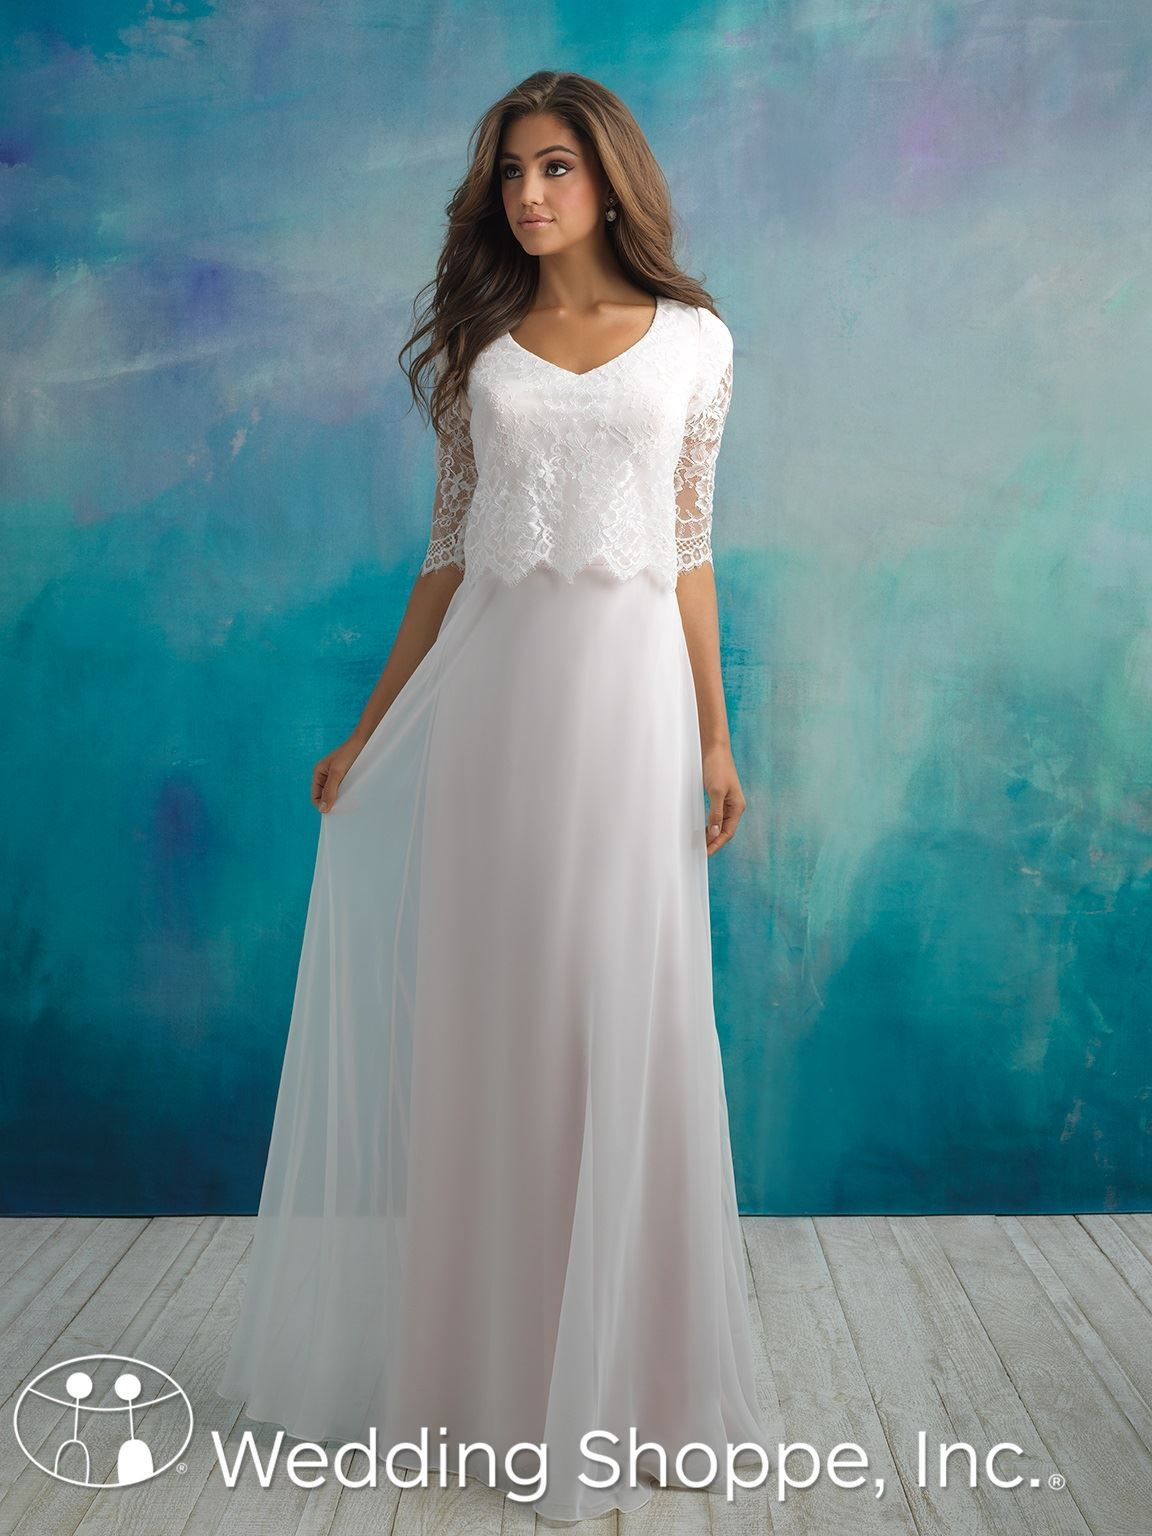 Colorful Modest Wedding Gowns Illustration - All Wedding Dresses ...